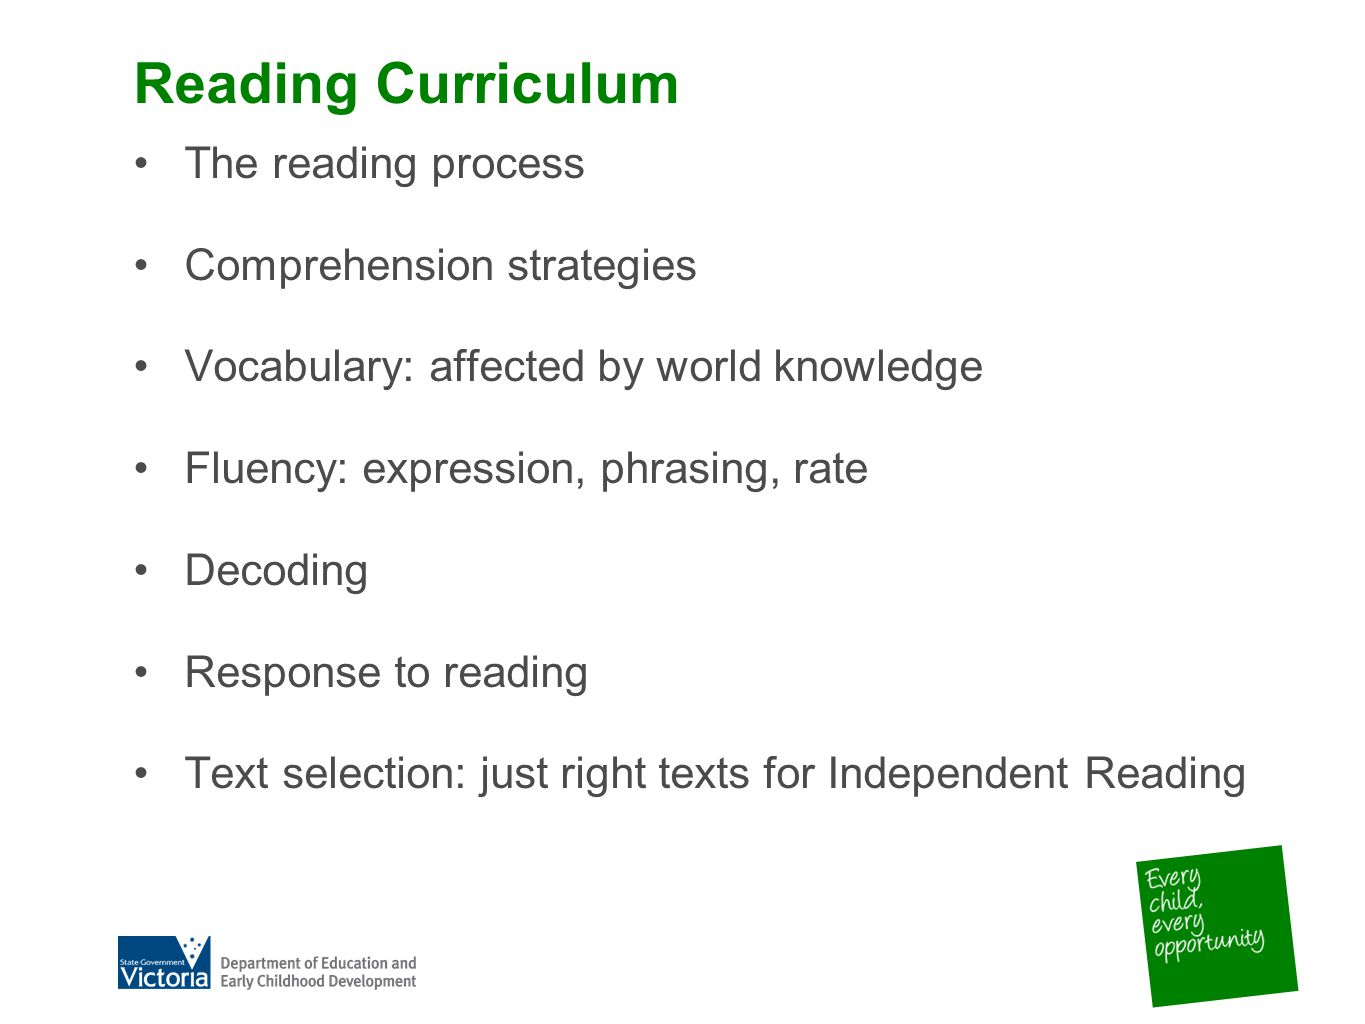 Reading Curriculum The reading process Comprehension strategies Vocabulary: affected by world knowledge Fluency: expression, phrasing, rate Decoding Response to reading Text selection: just right texts for Independent Reading